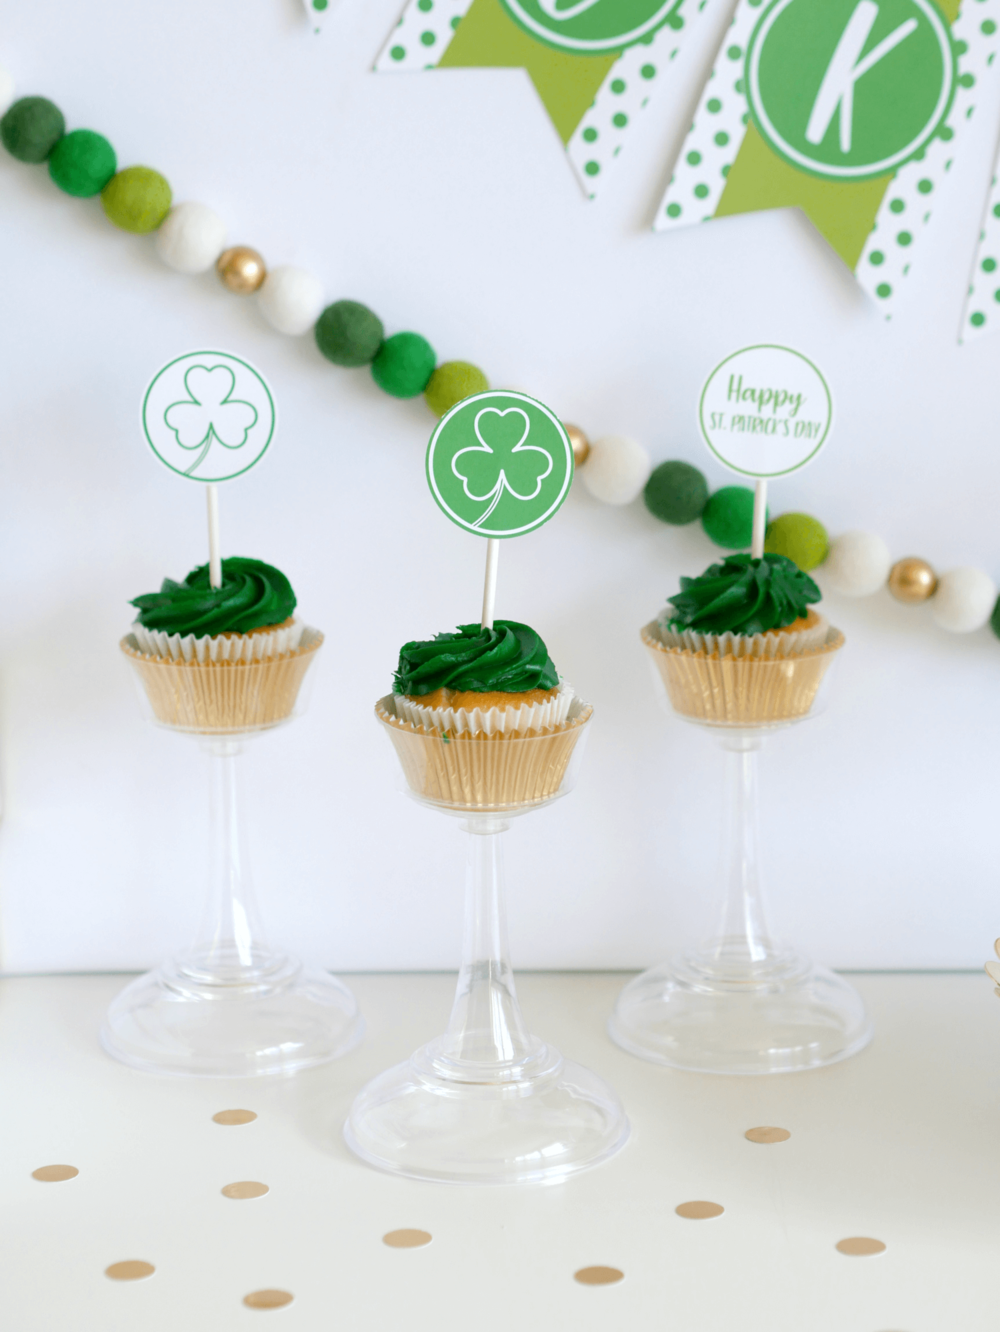 St. Patricks Day dessert ideas / St. Patricks day party ideas / St. Patricks day party inspiration / St. Patricks day free printables / St. Patricks day desserts ideas / Styled by Carolina from MINT Event Design / www.minteventdesign.com